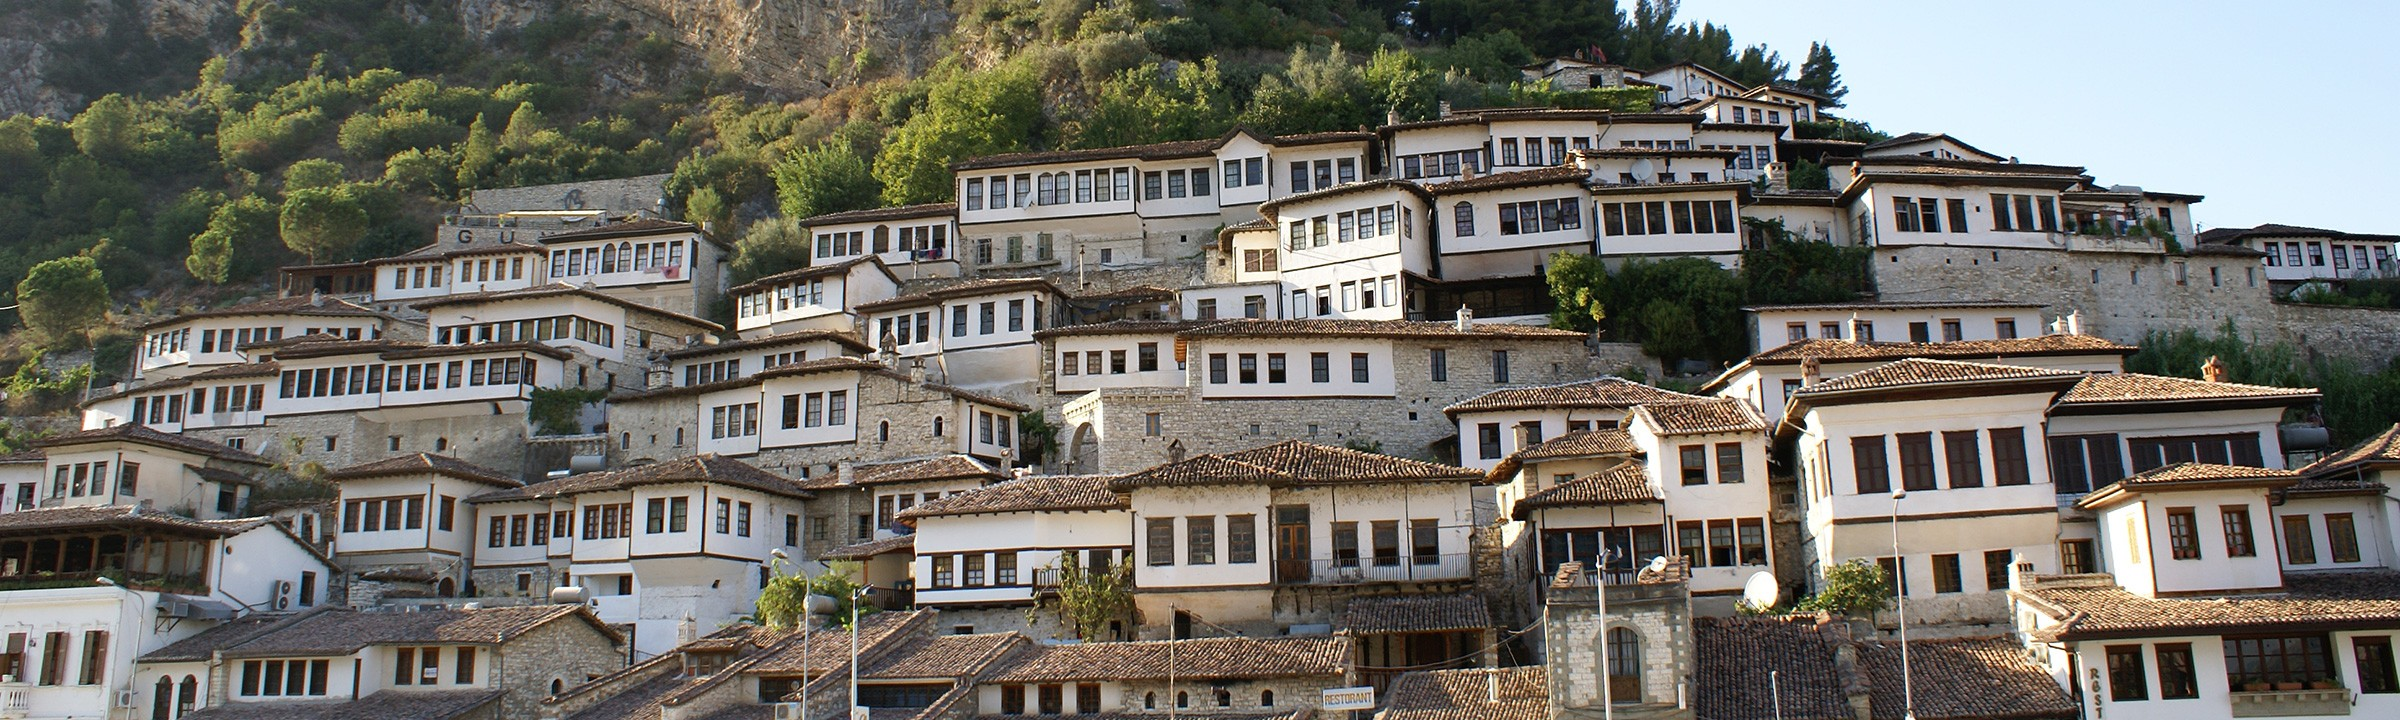 Definitely visit Berat during your trip in Albania.